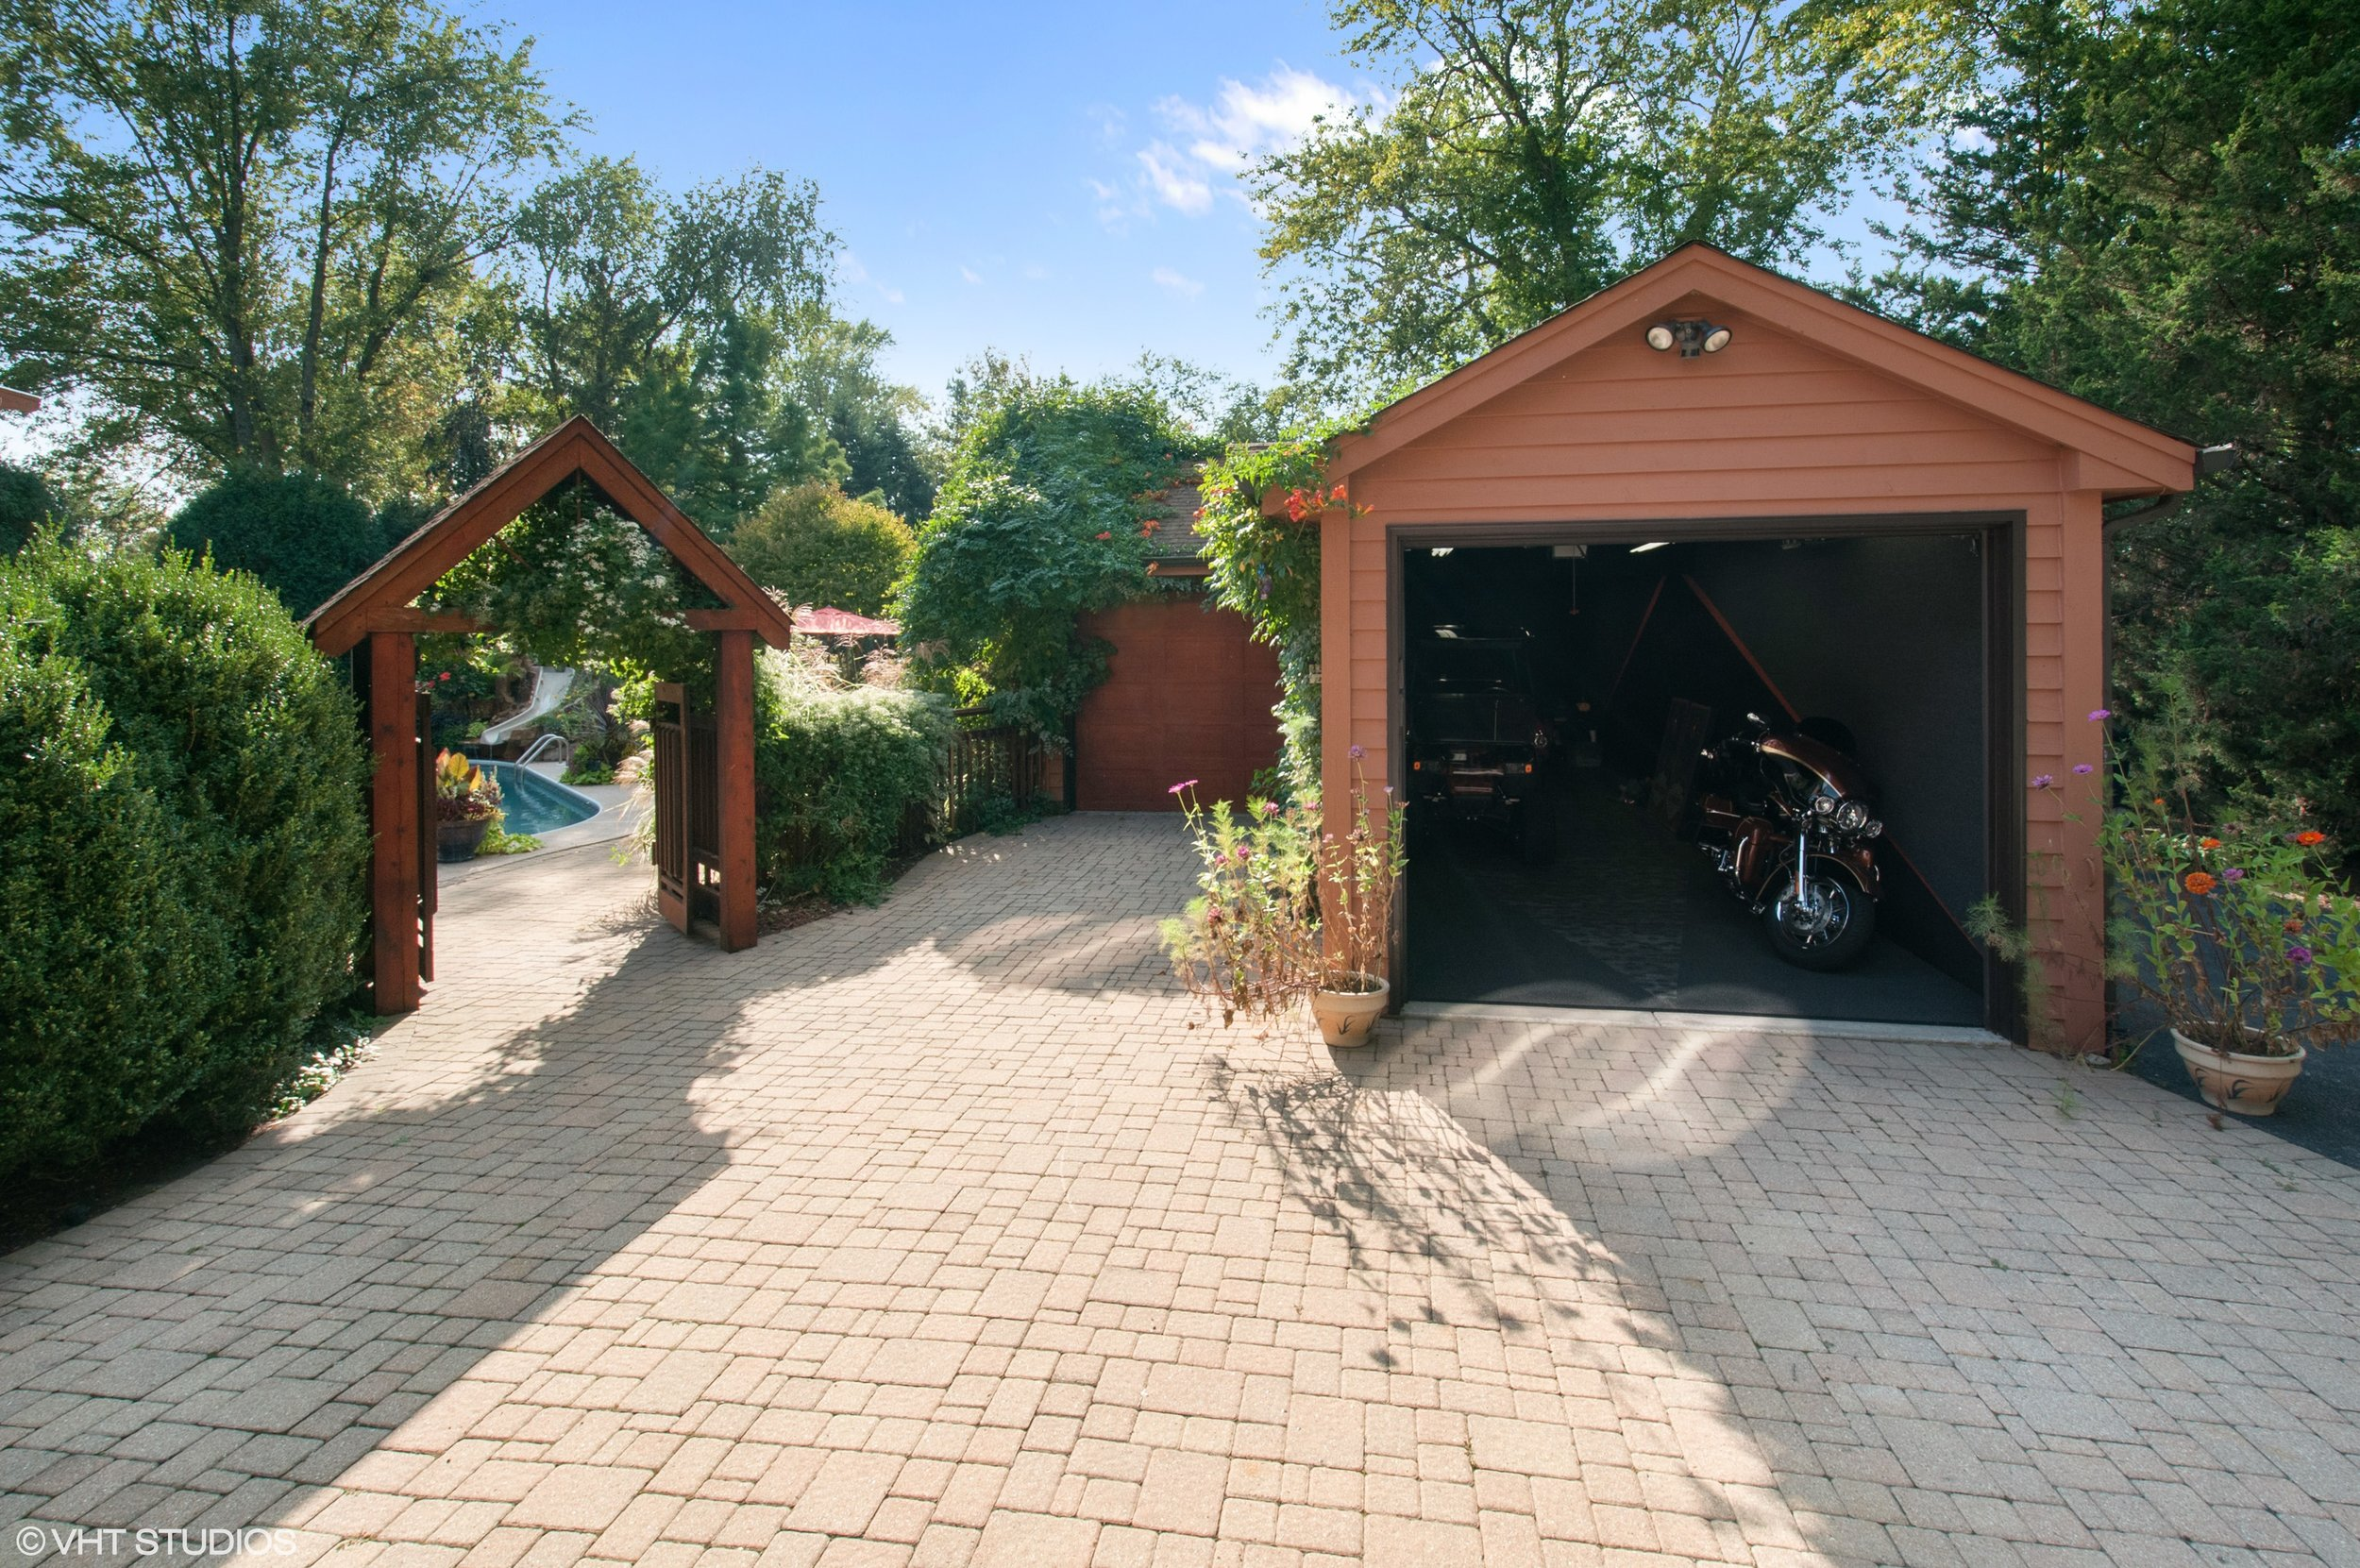 03_5704Riverview_34_Driveway_HiRes.jpg